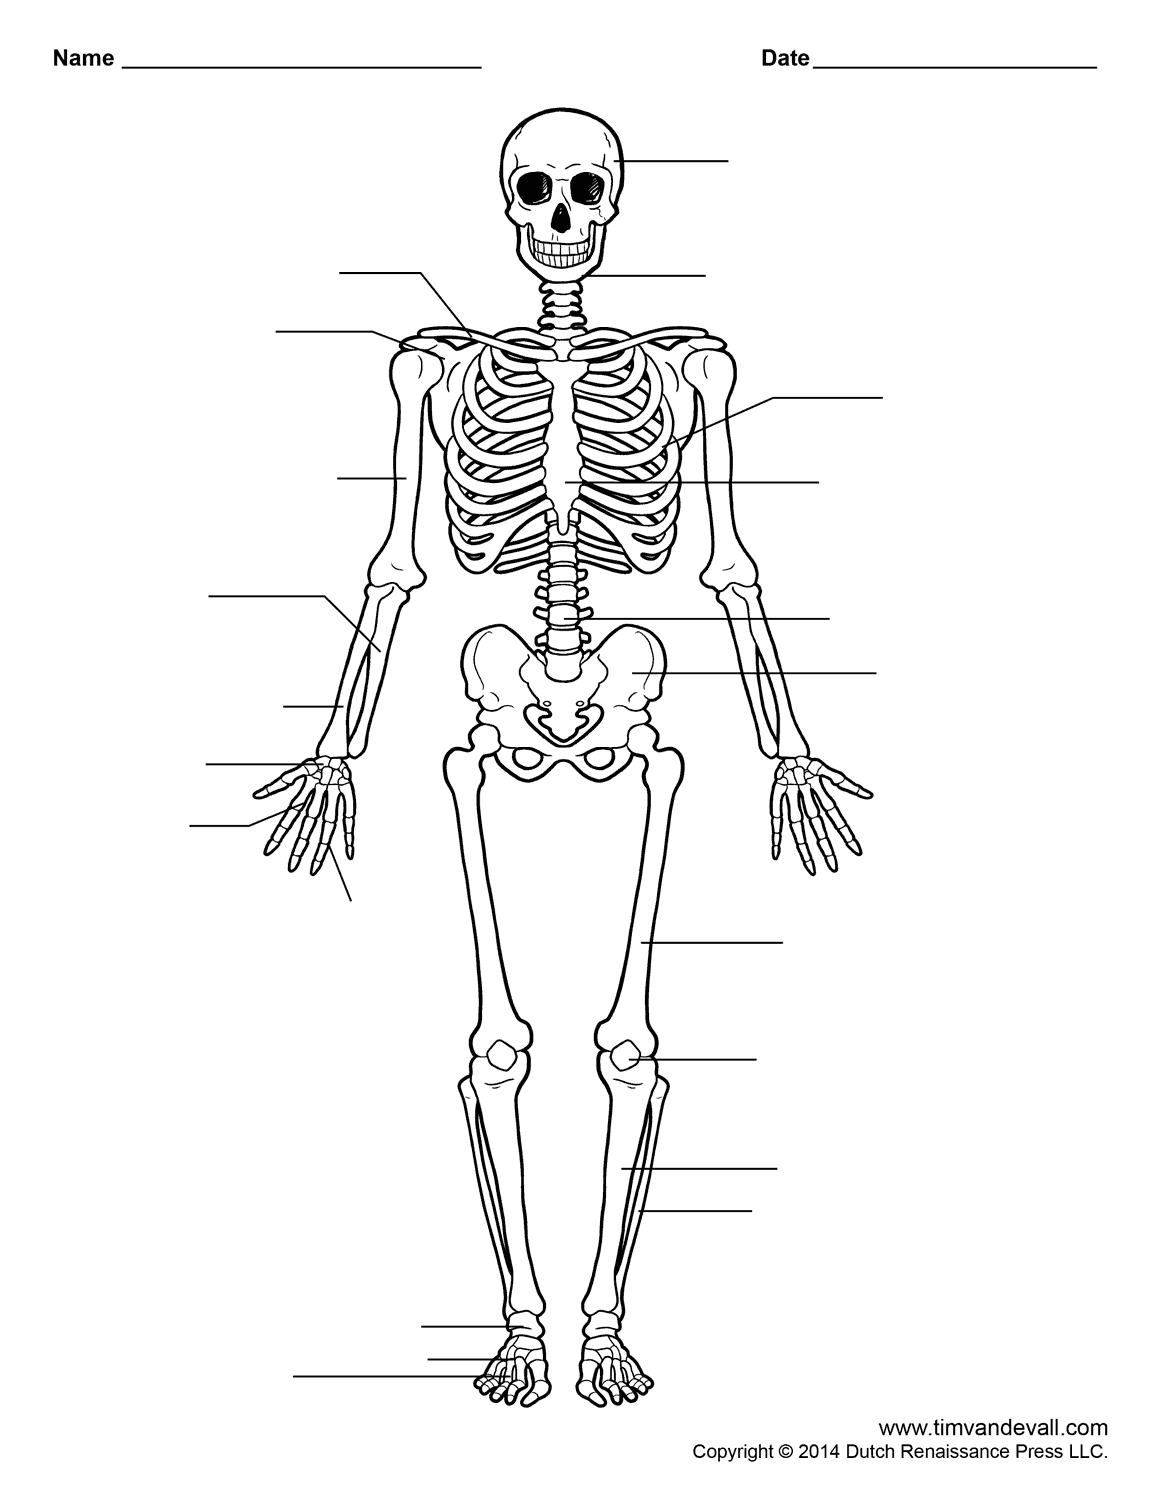 Worksheets Human Skeleton Worksheet free printable human skeleton worksheet for students and teachers teachers